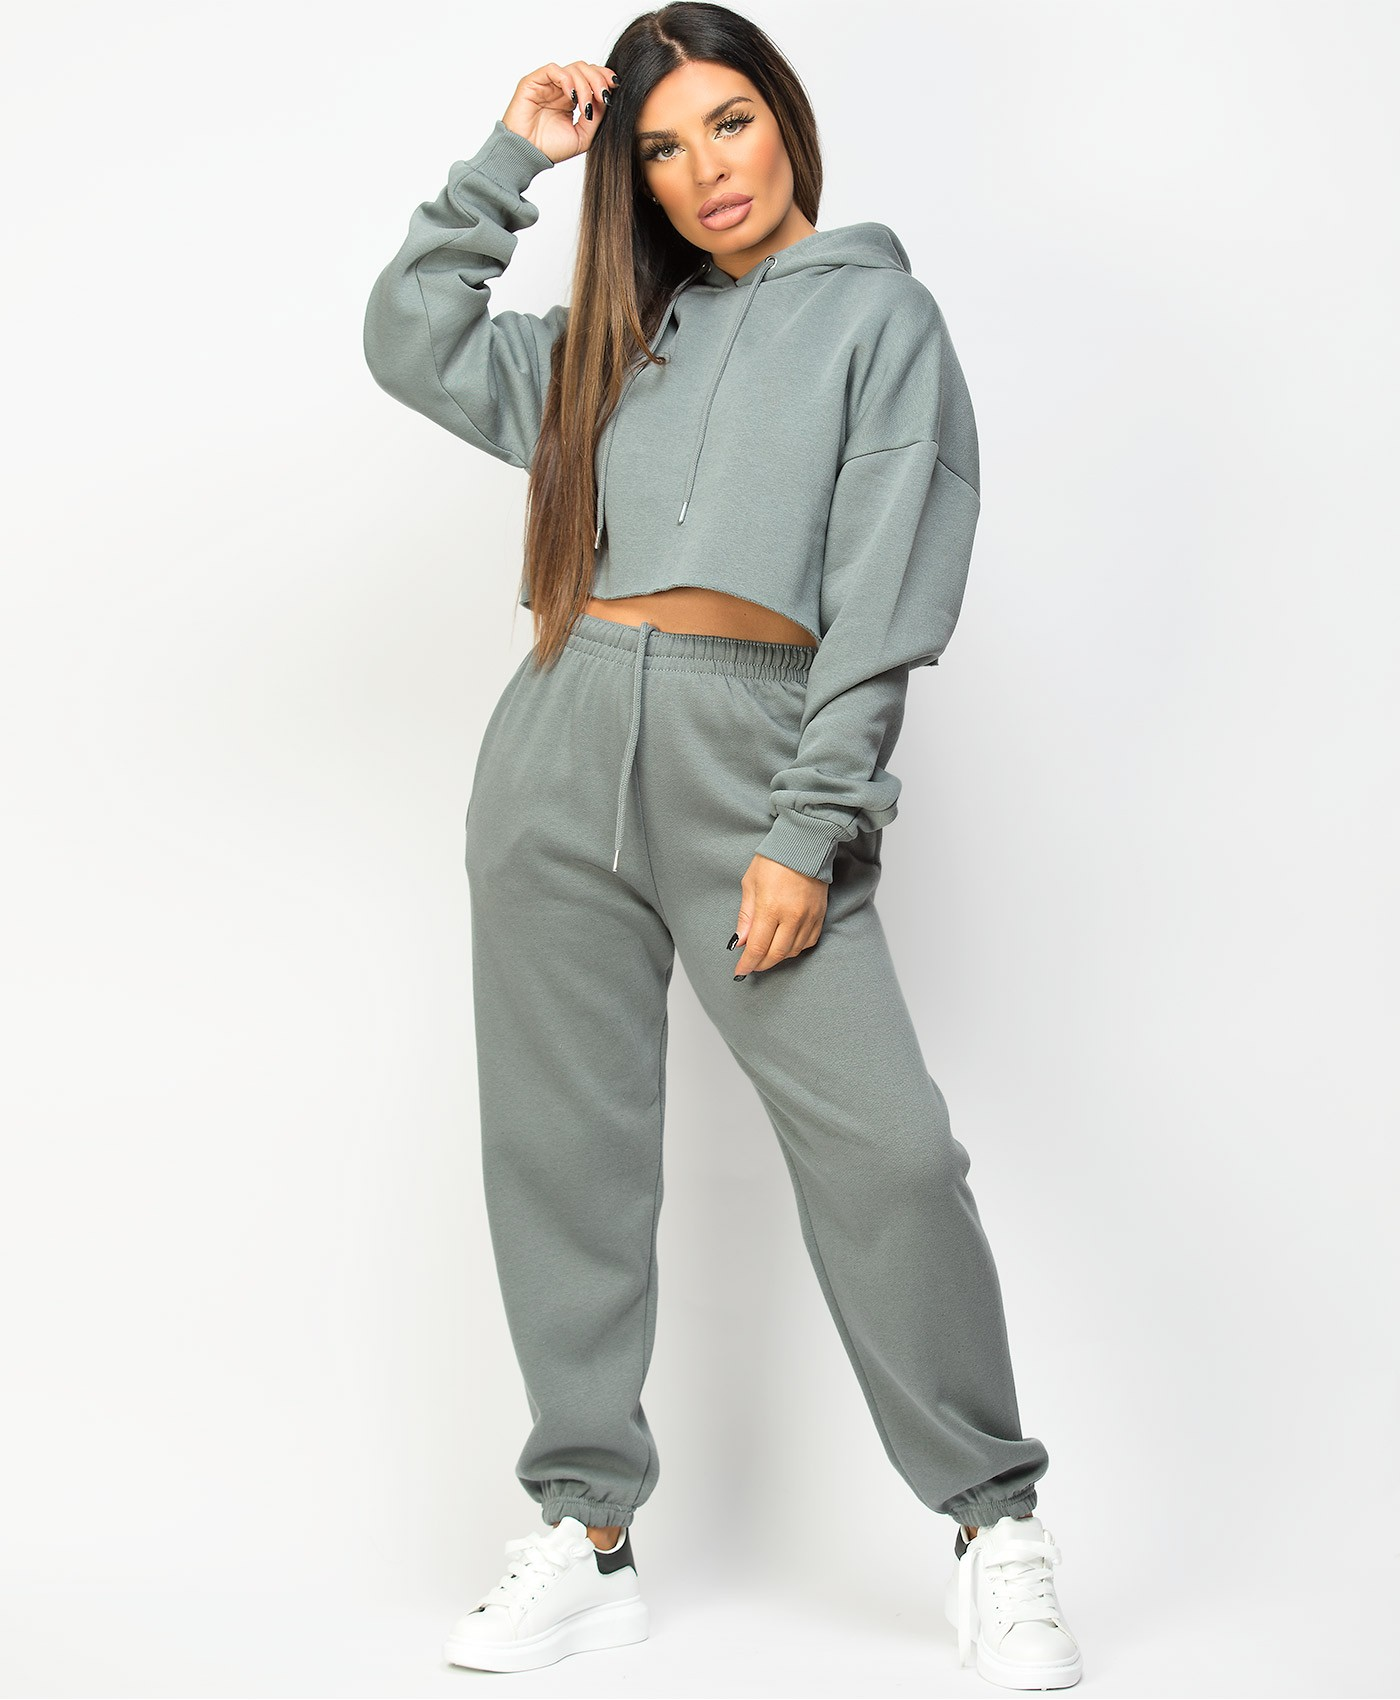 Airforce-Oversized-Cropped-Hoody-&-Joggers-Loungewear-Set-1